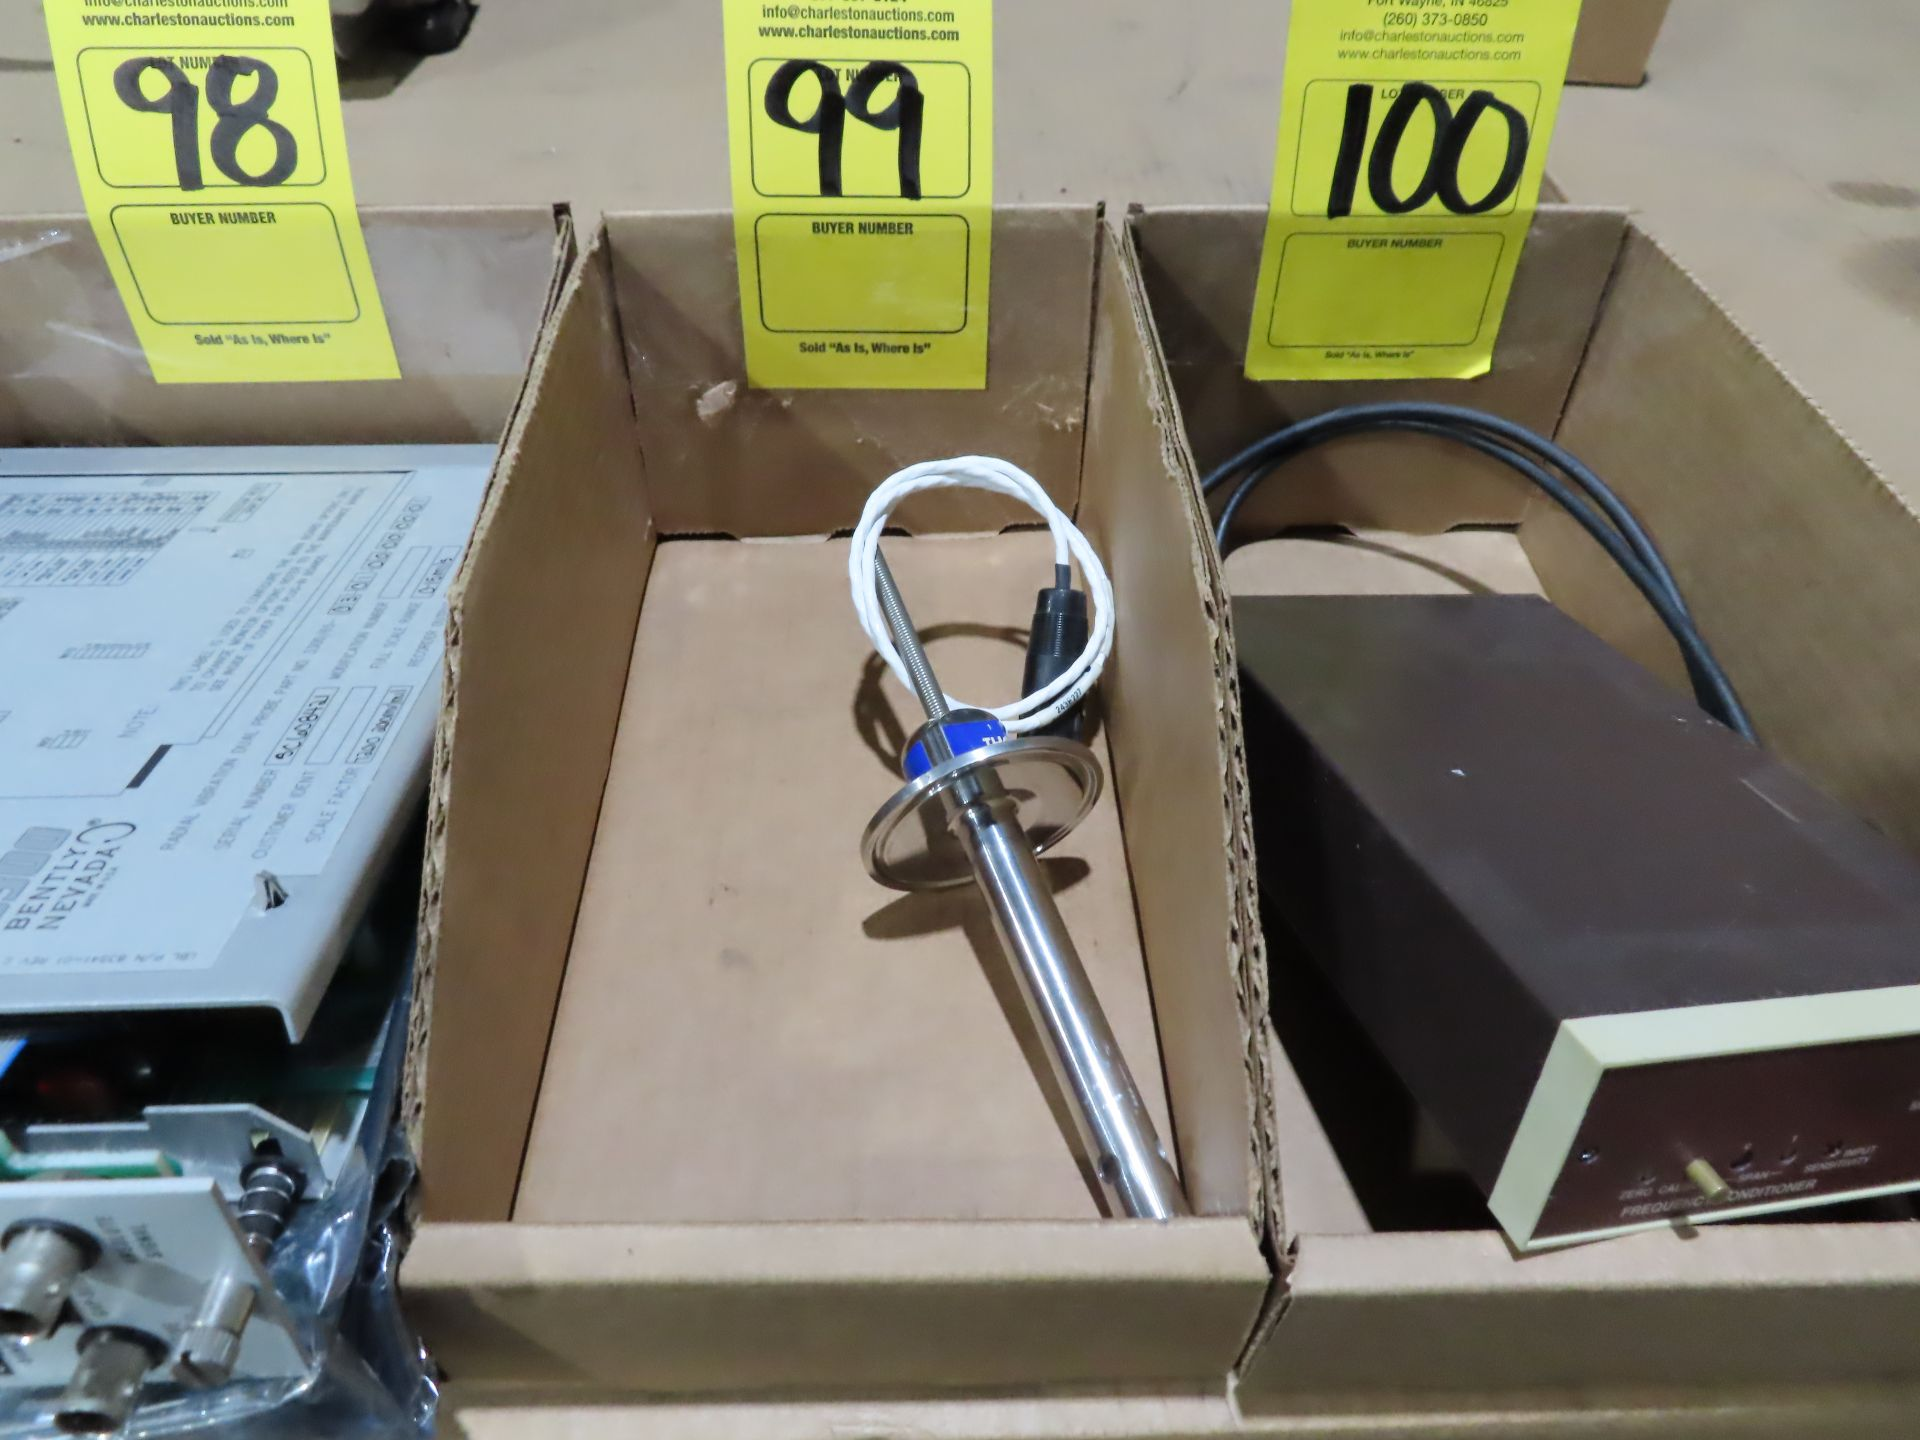 Lot 99 - Thorton model 243E227, new without box, as always, with Brolyn LLC auctions, all lots can be